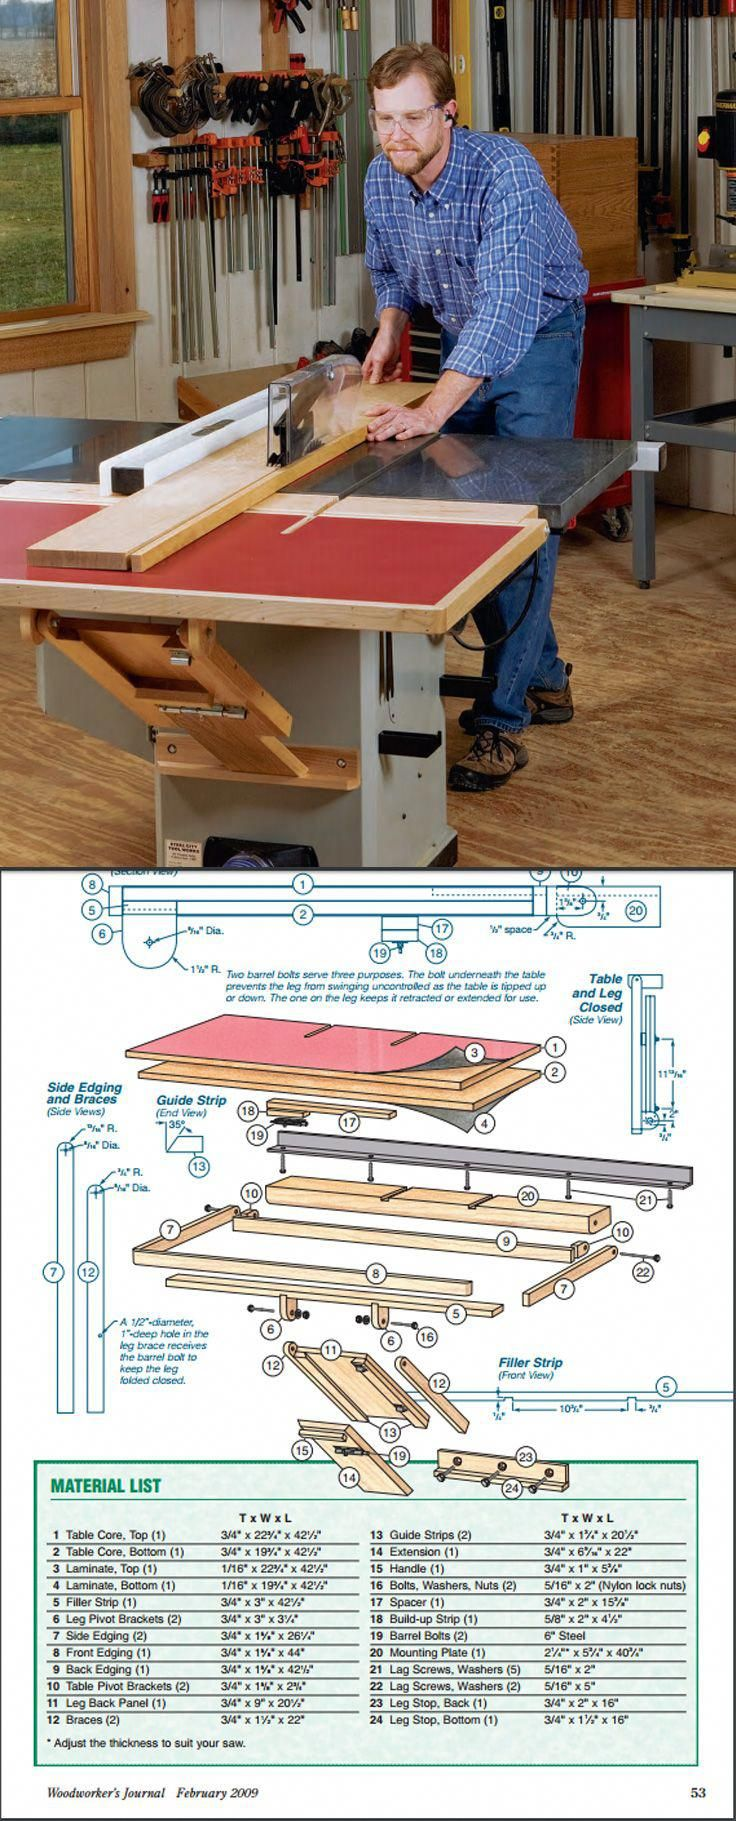 Setting Up Shop Stationary Power Tools Table Saw Stand Table Saw Woodworking Table Saw